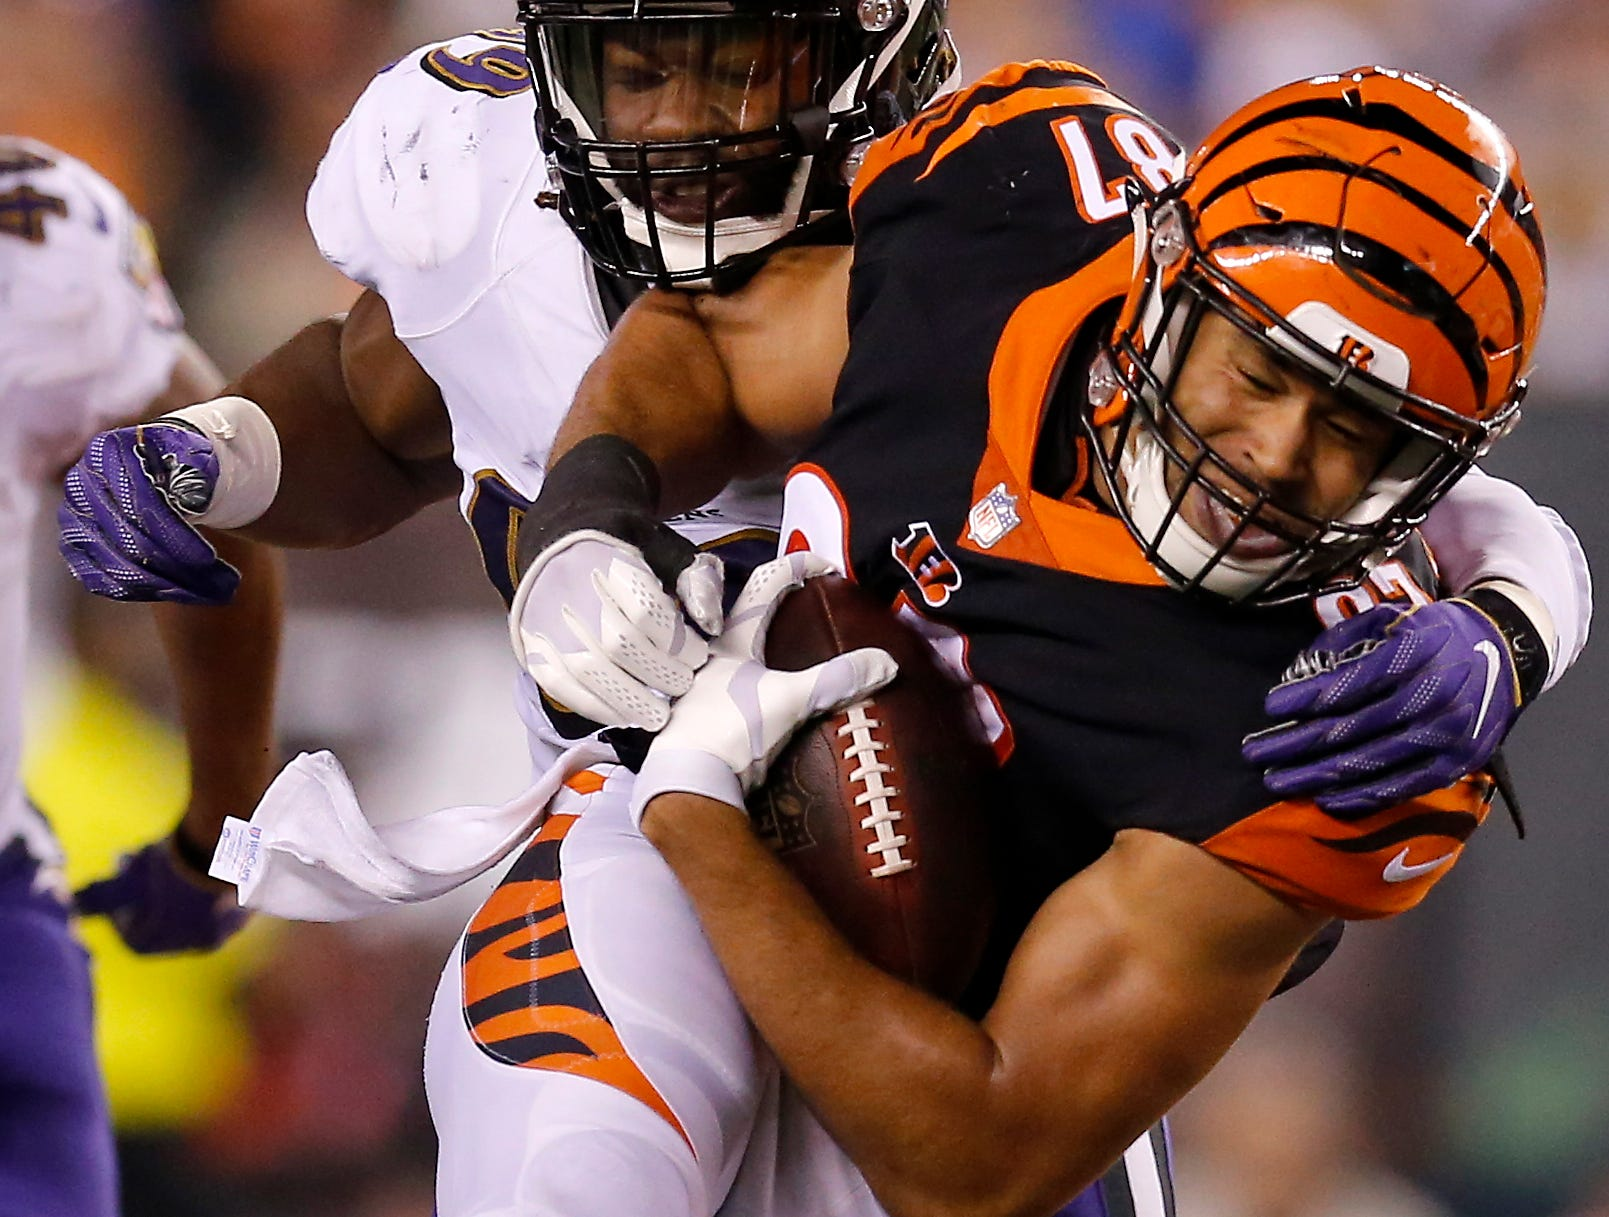 Cincinnati Bengals tight end C.J. Uzomah (87) fights a tackle by Baltimore Ravens linebacker Matt Judon (99) in the fourth quarter of the NFL Week 2 game between the Cincinnati Bengals and the Baltimore Ravens at Paul Brown Stadium in downtown Cincinnati on Thursday, Sept. 13, 2018. The Bengals improved to 2-0 on the season with a 34-23 win over the Ravens.